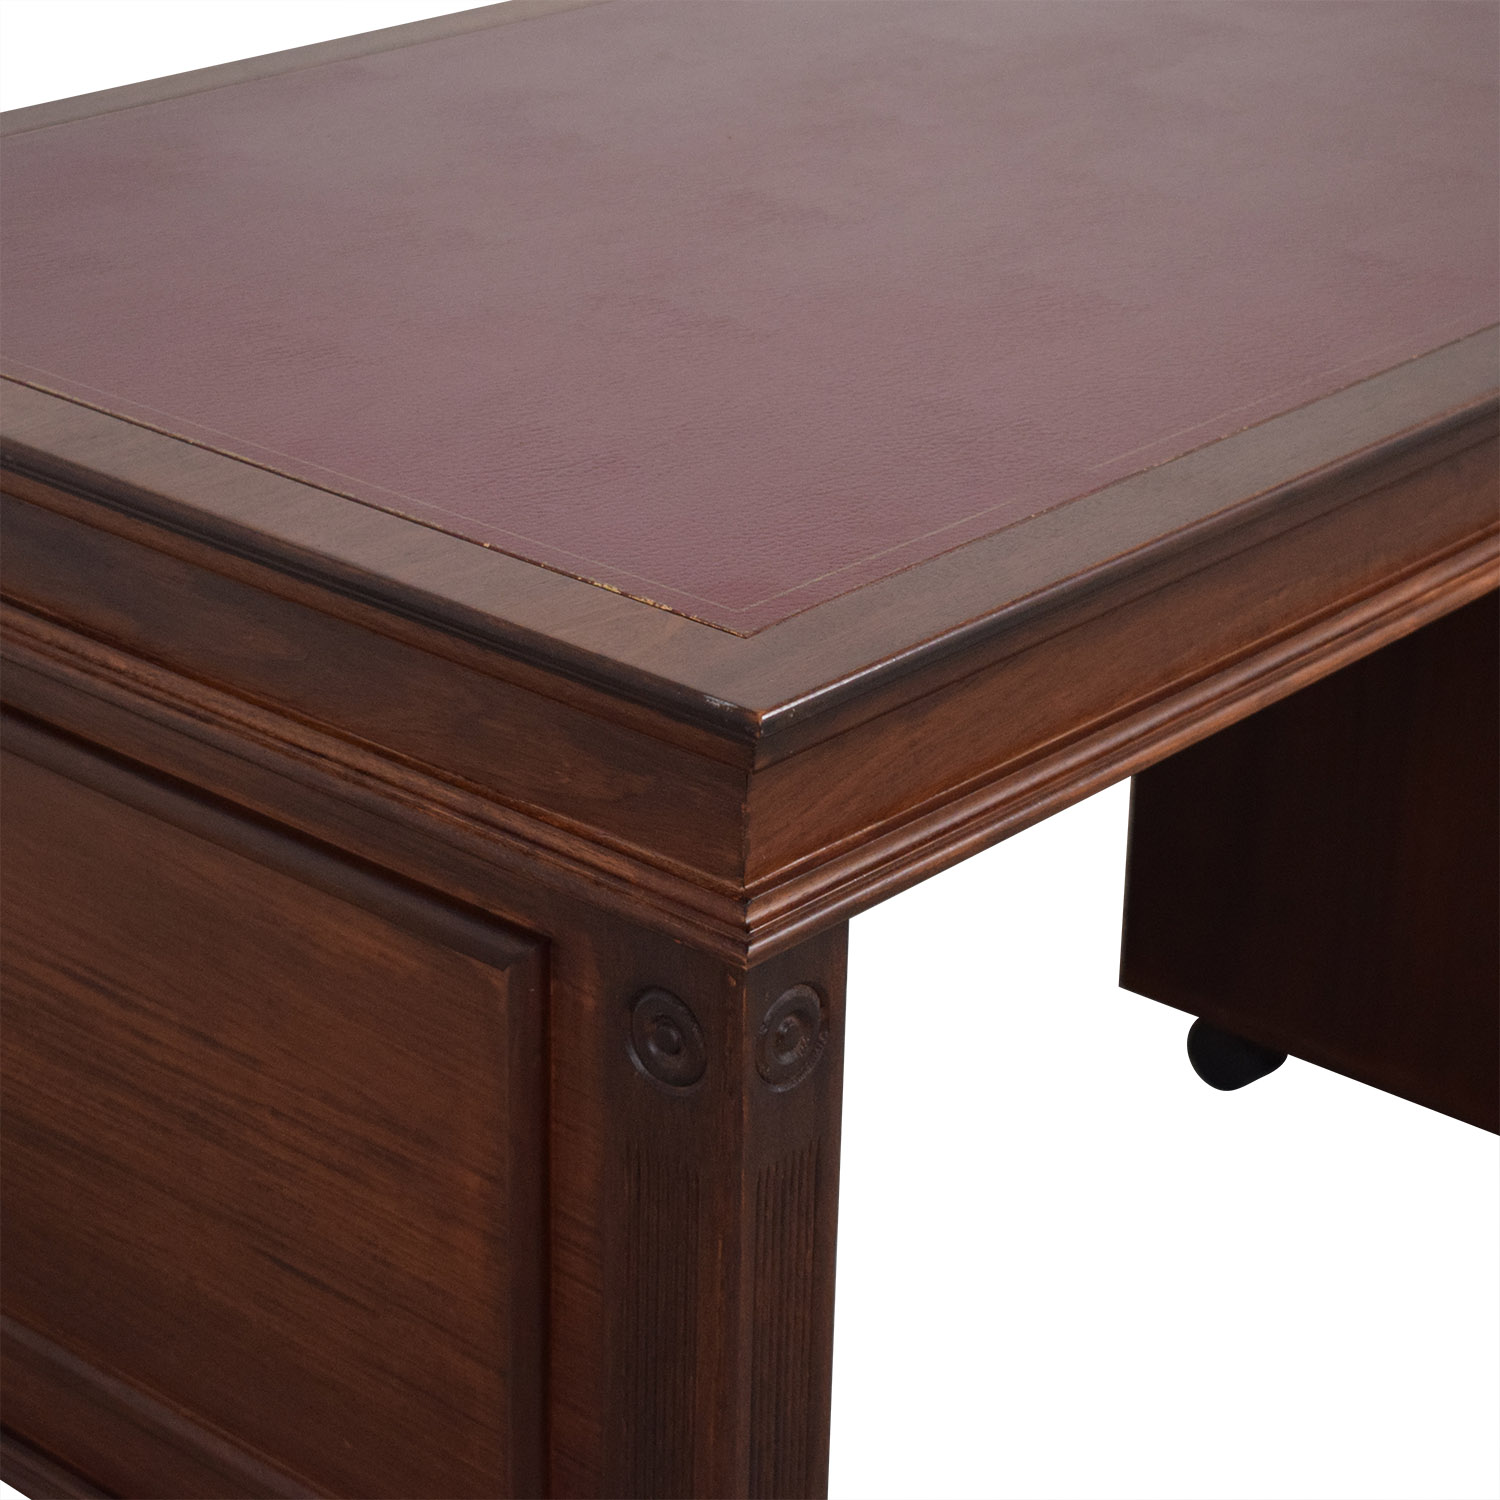 Inlay Desk with Rolling Cabinet pa